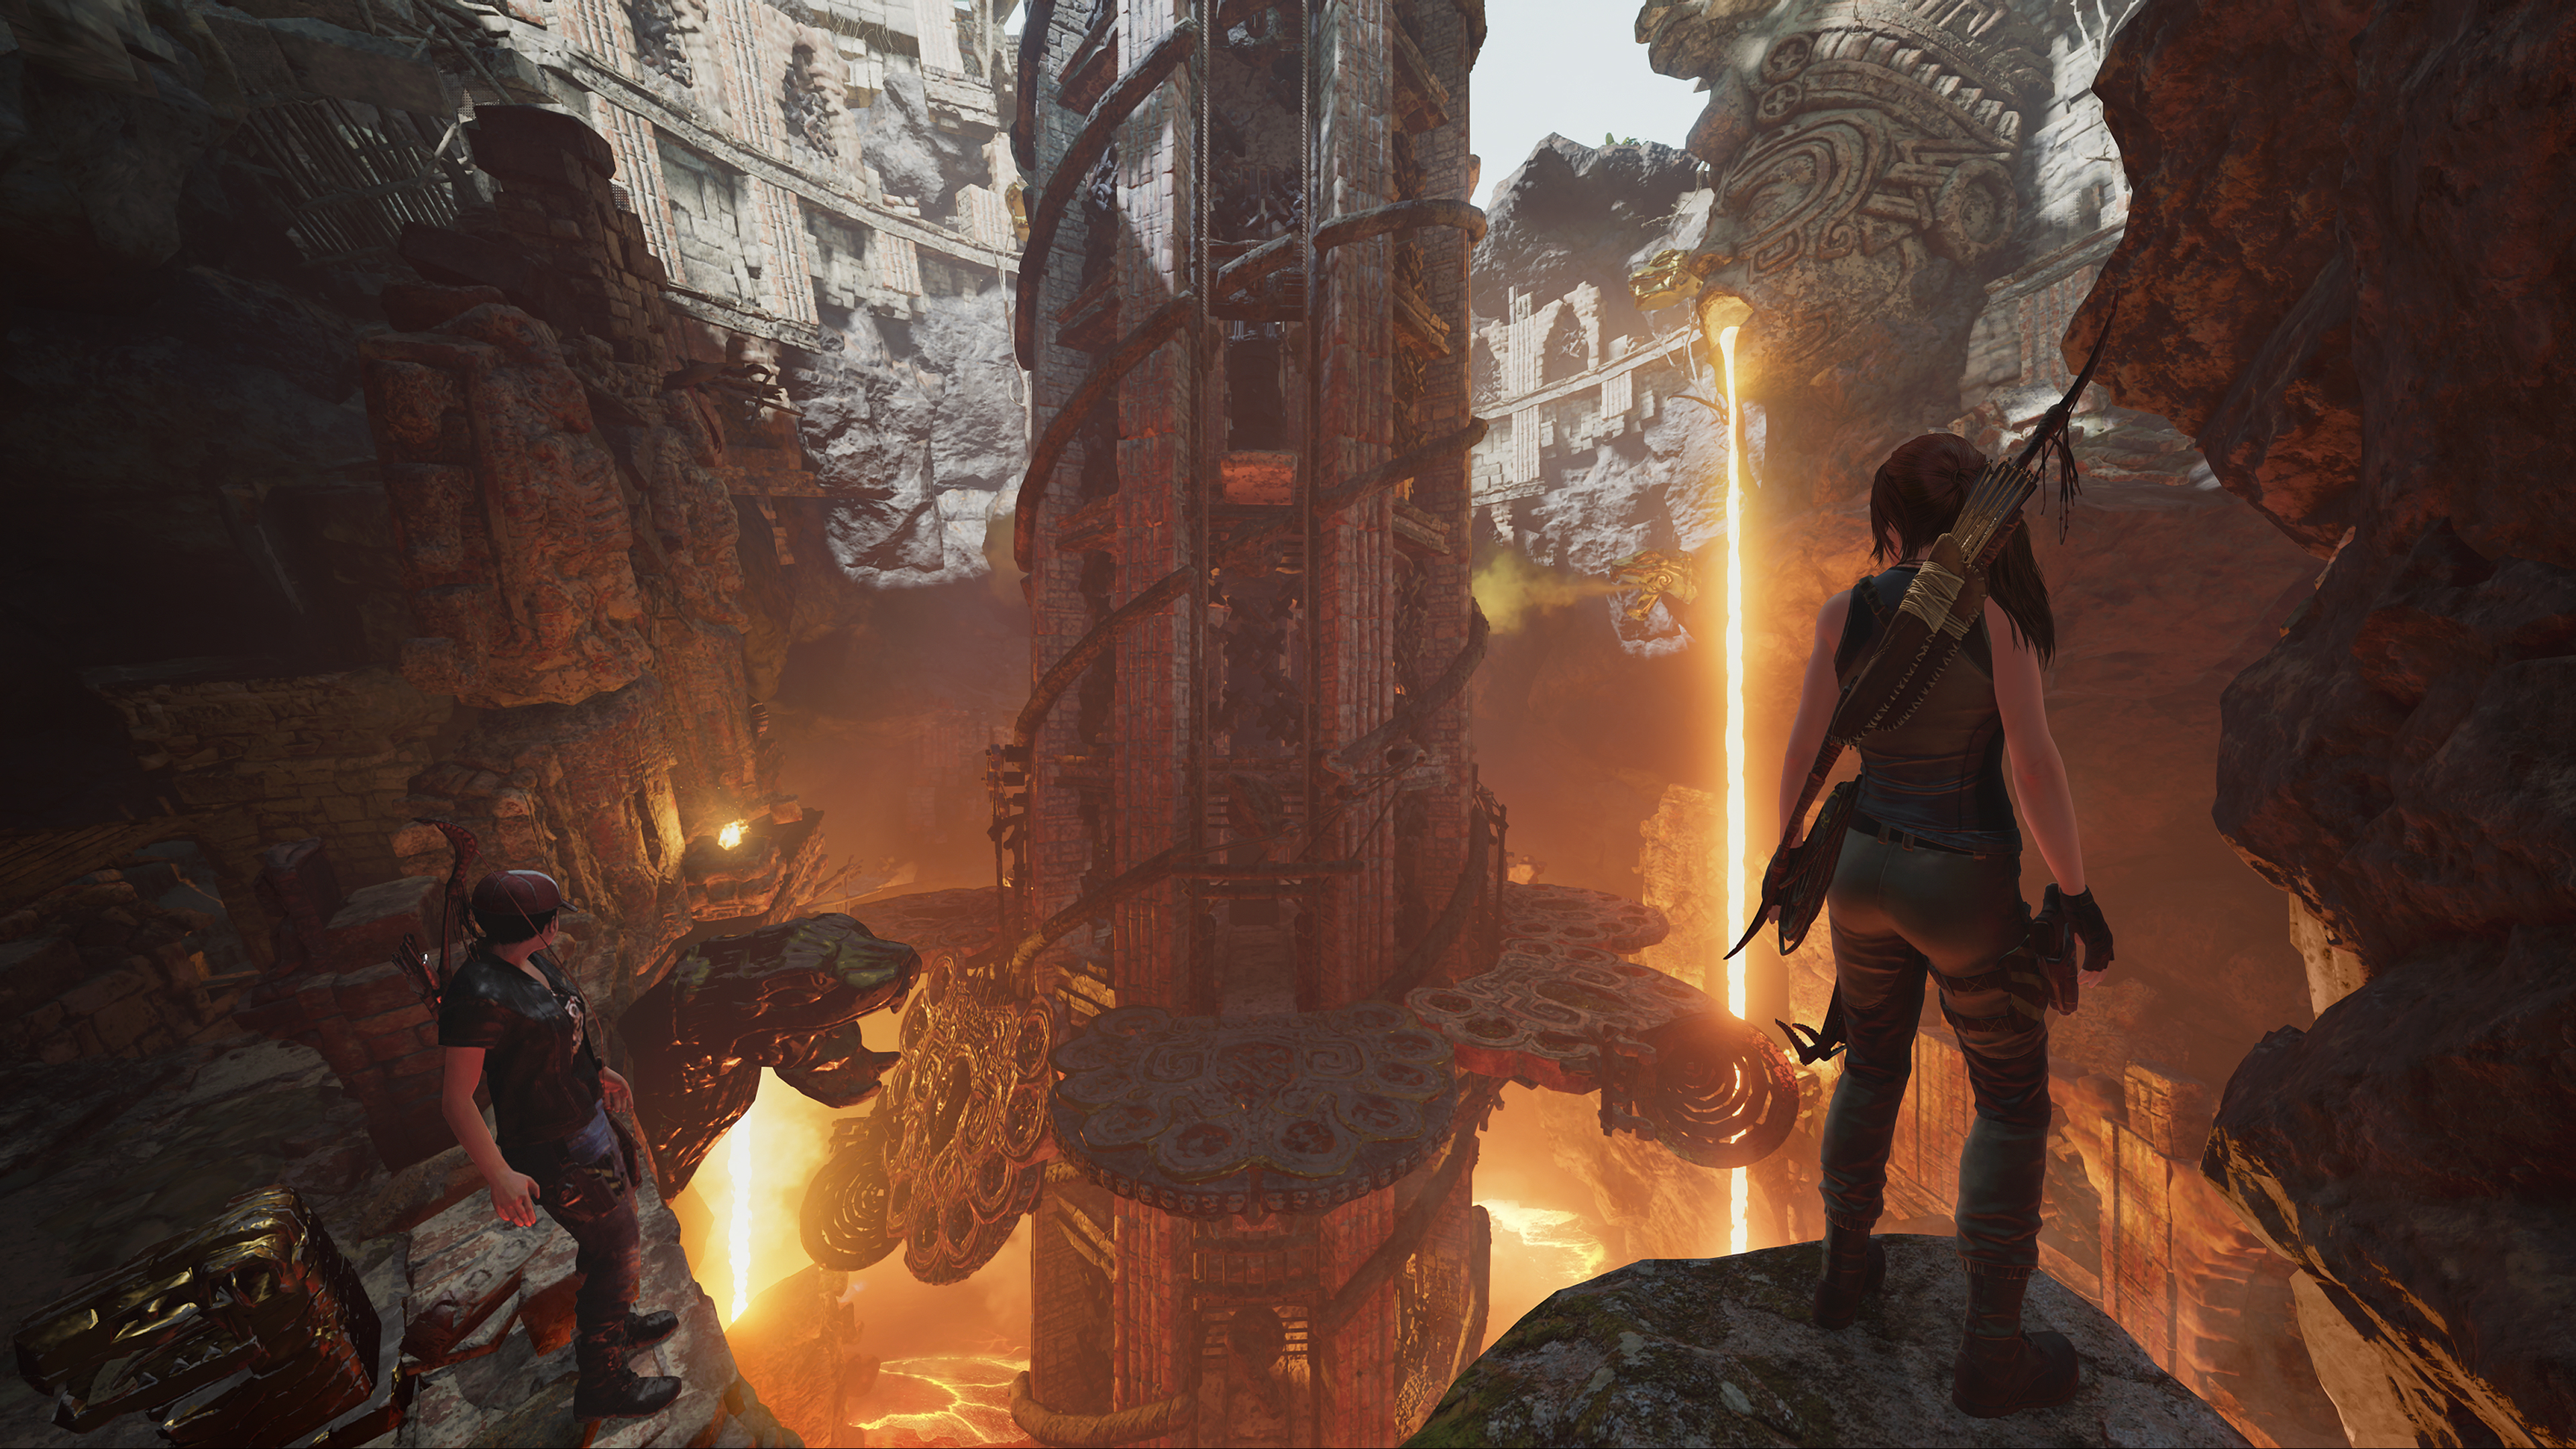 Media asset in full size related to 3dfxzone.it news item entitled as follows: Square Enix annuncia il DLC The Forge di Shadow of the Tomb Raider | Image Name: news28795_The-Forge-Shadow-of-the-Tomb-Raider_2.jpg